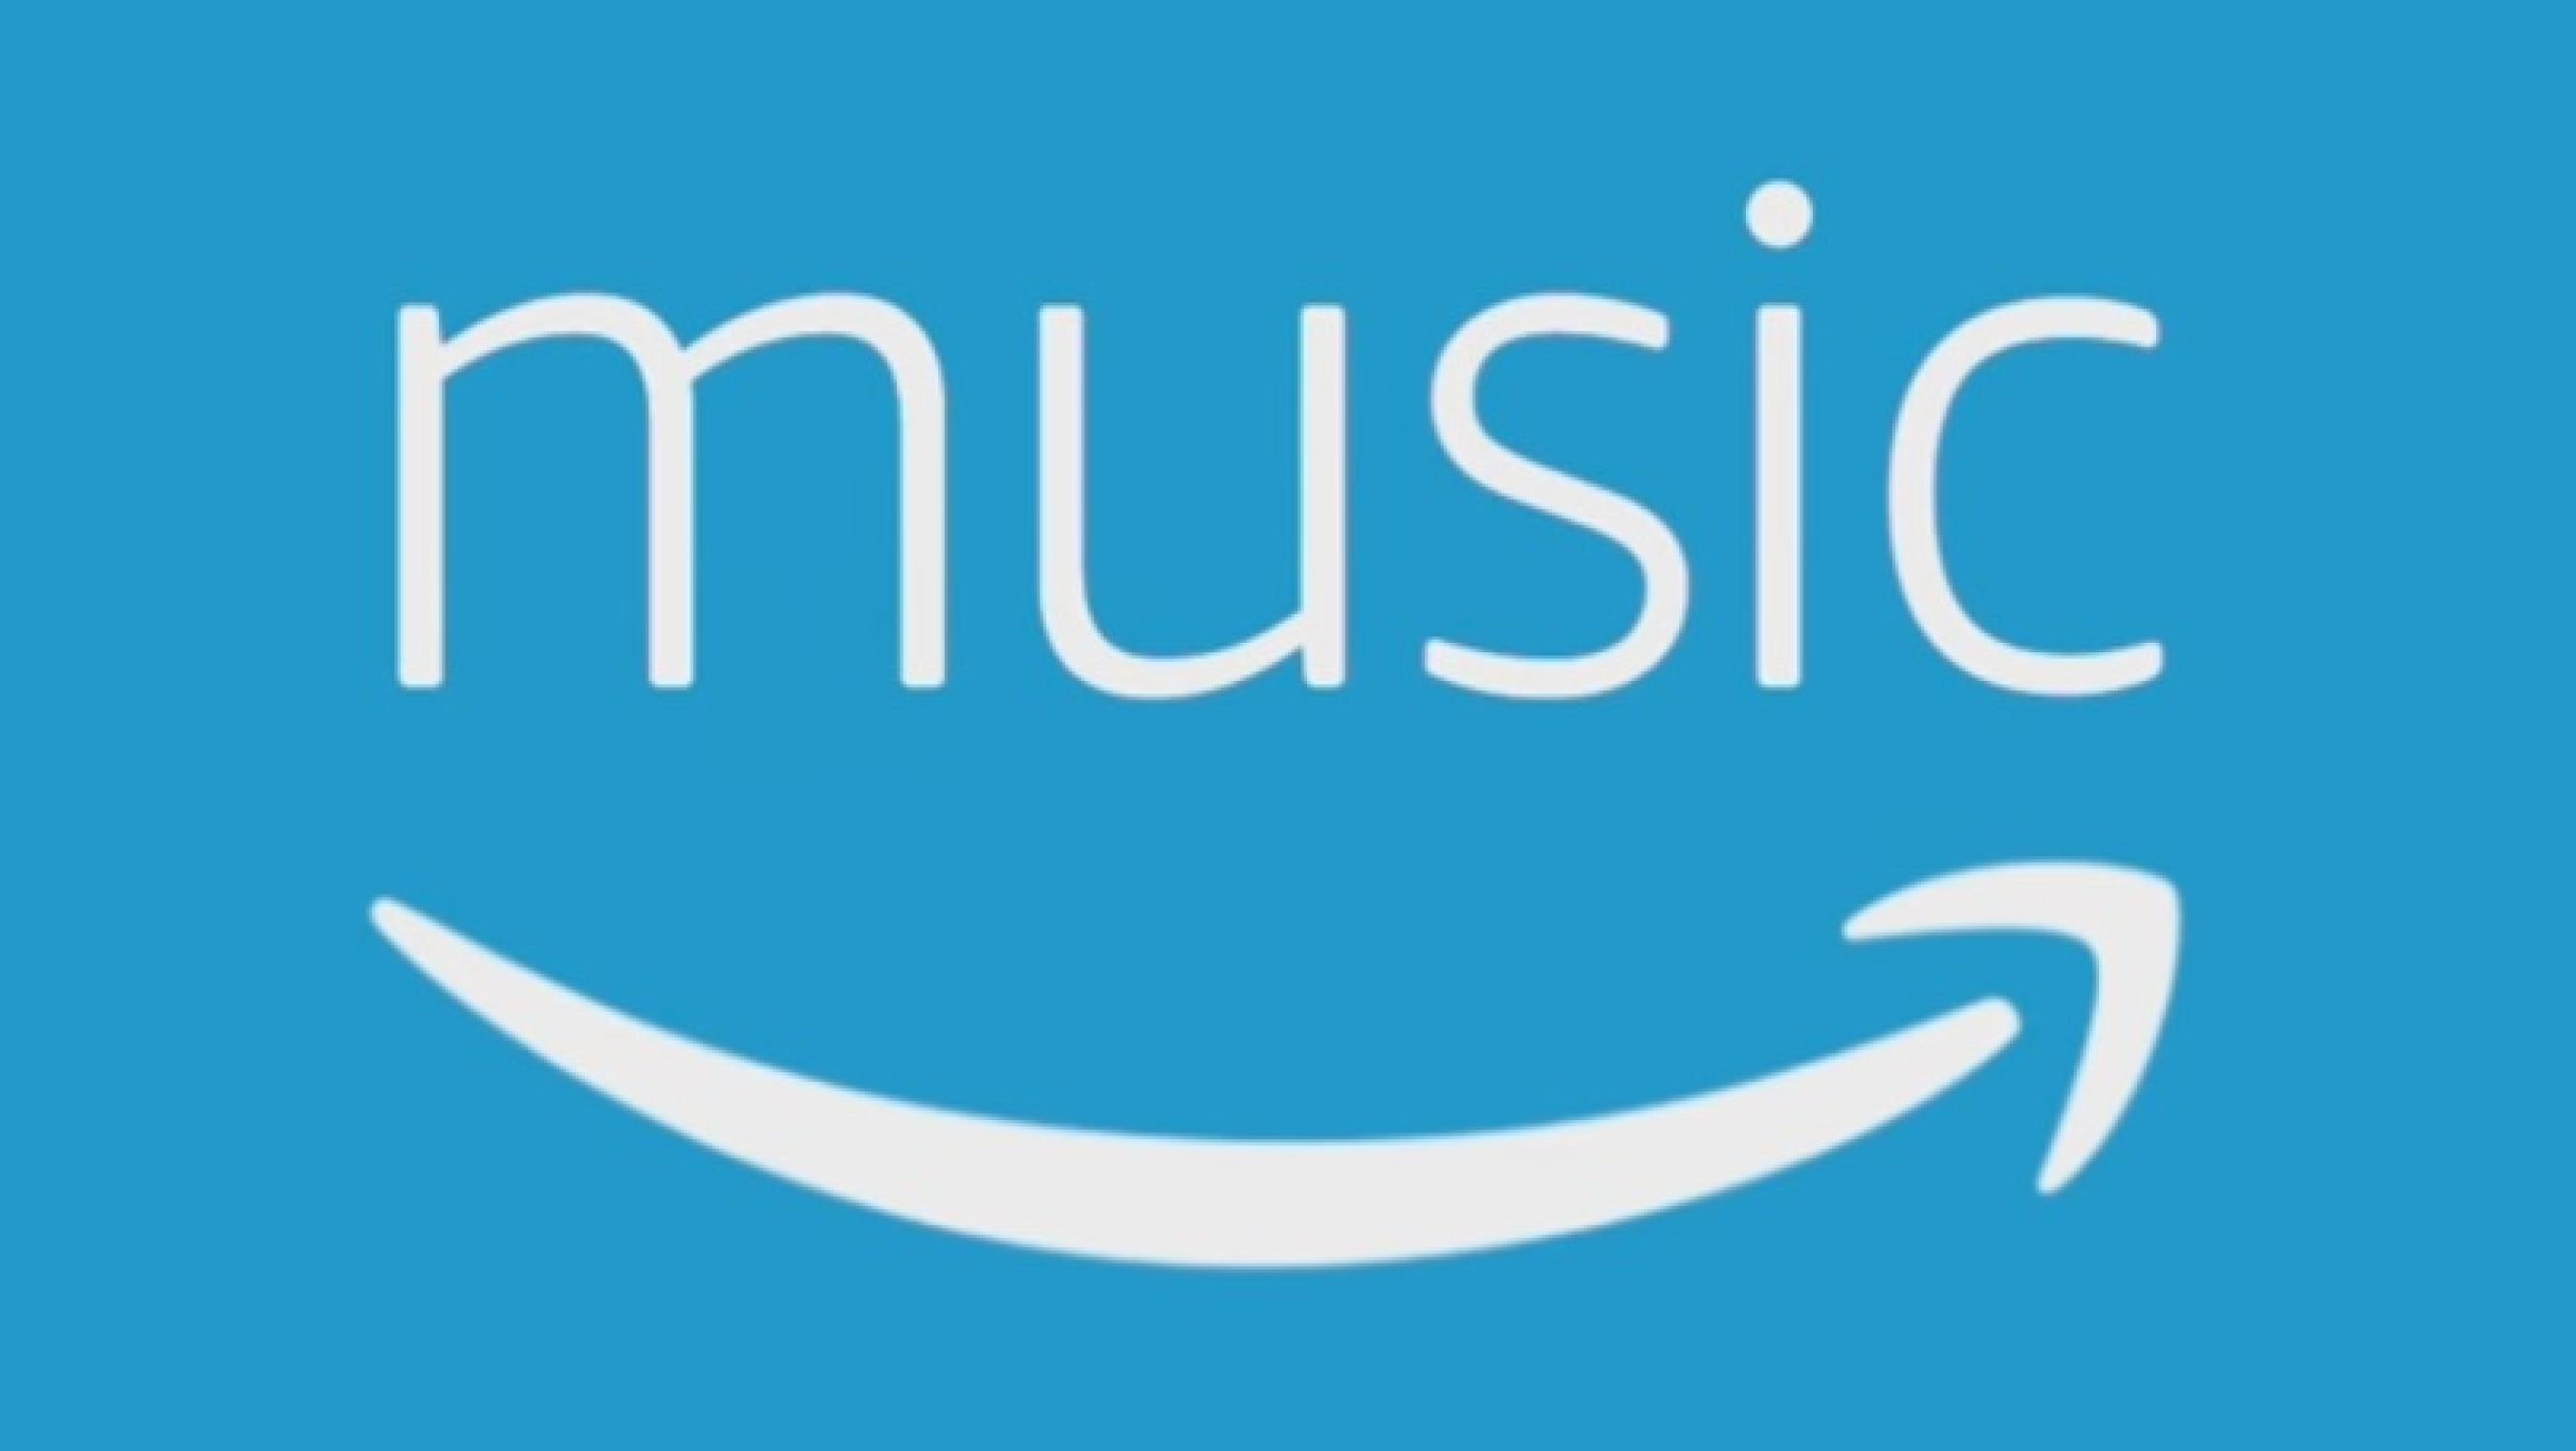 Amazon Music Logo - Report: Amazon Plans Hi-Res Music Streaming Service | PCMag